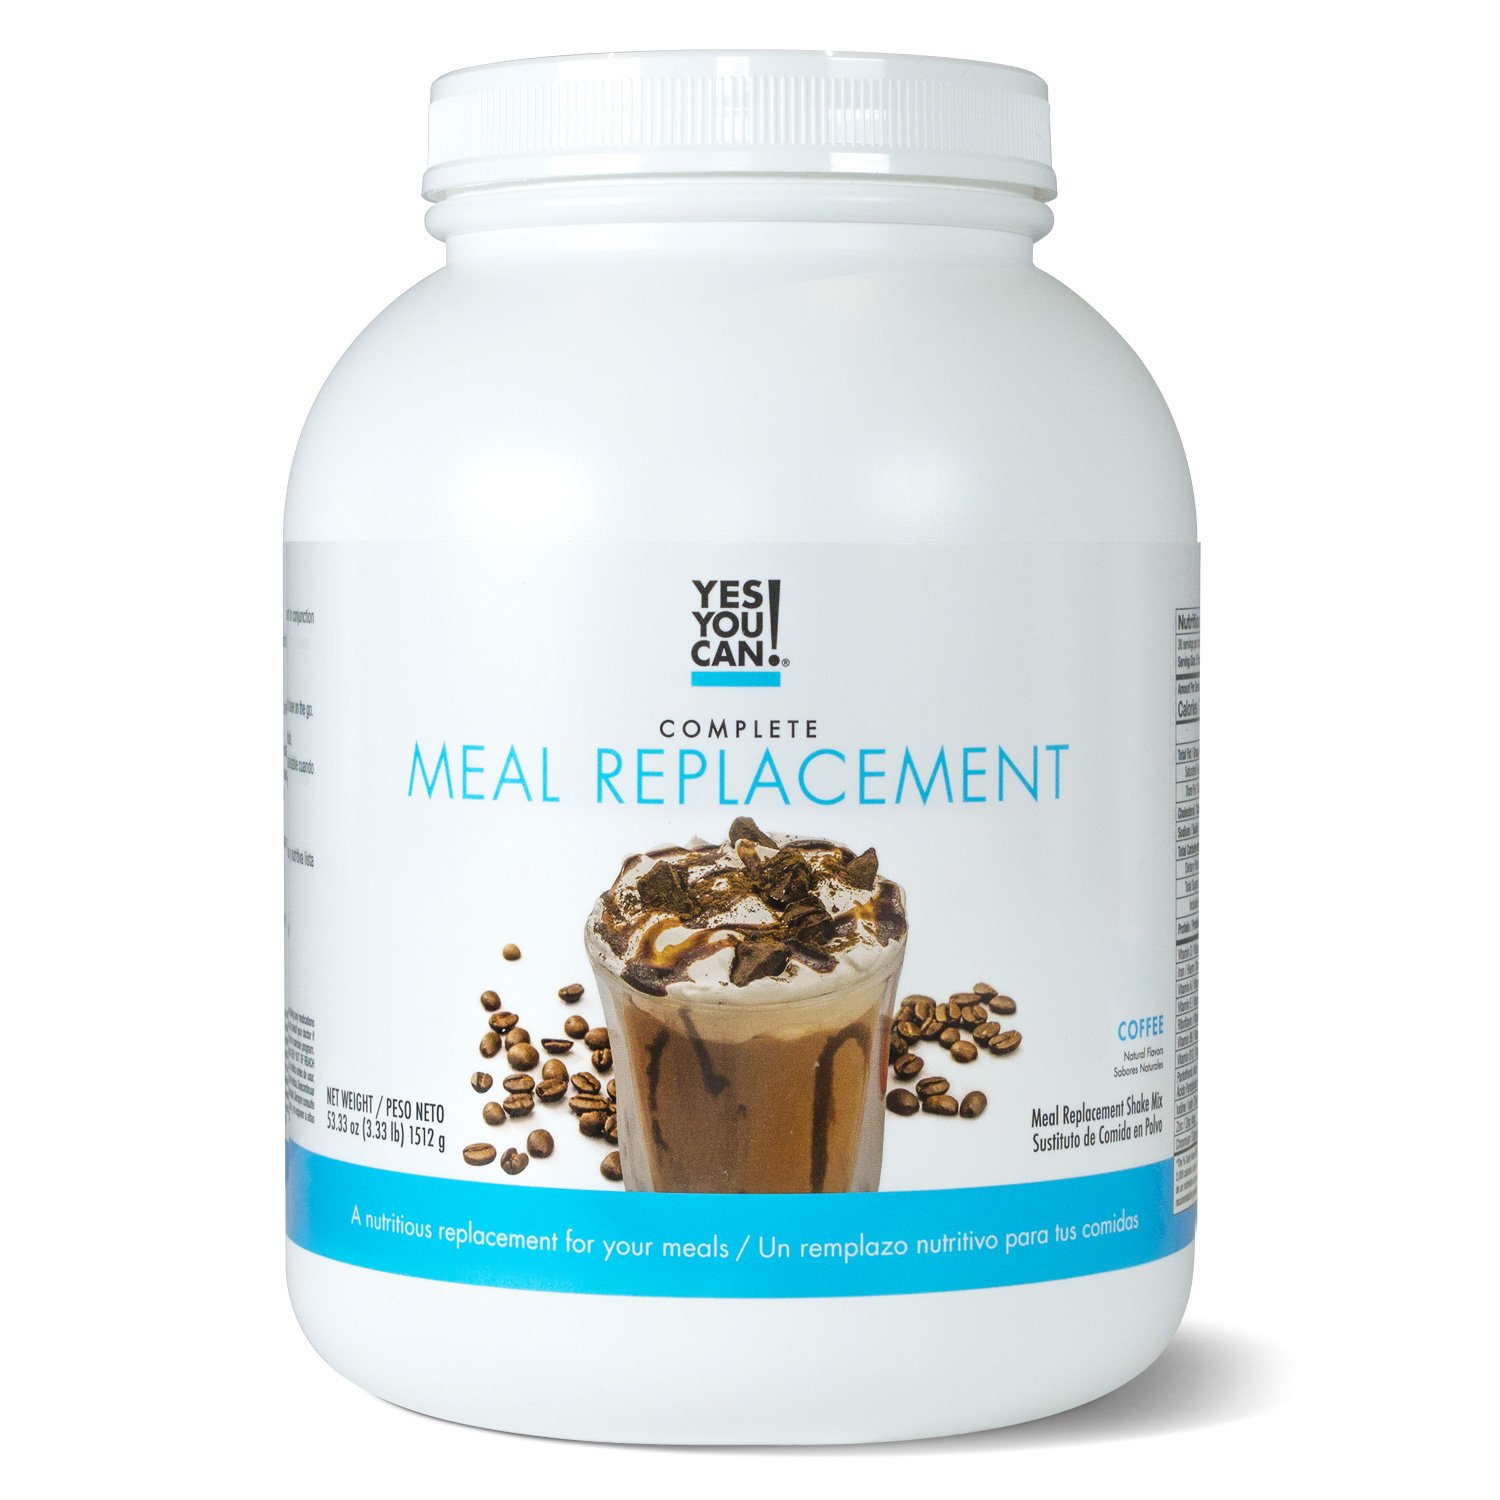 Complete Meal Replacement, Up to 2 Meals a Day, Helps Lose Weight - Sustituto de Comida Completo con Proteína para Perder Peso 30 Servings, 3.33 Lb, ...